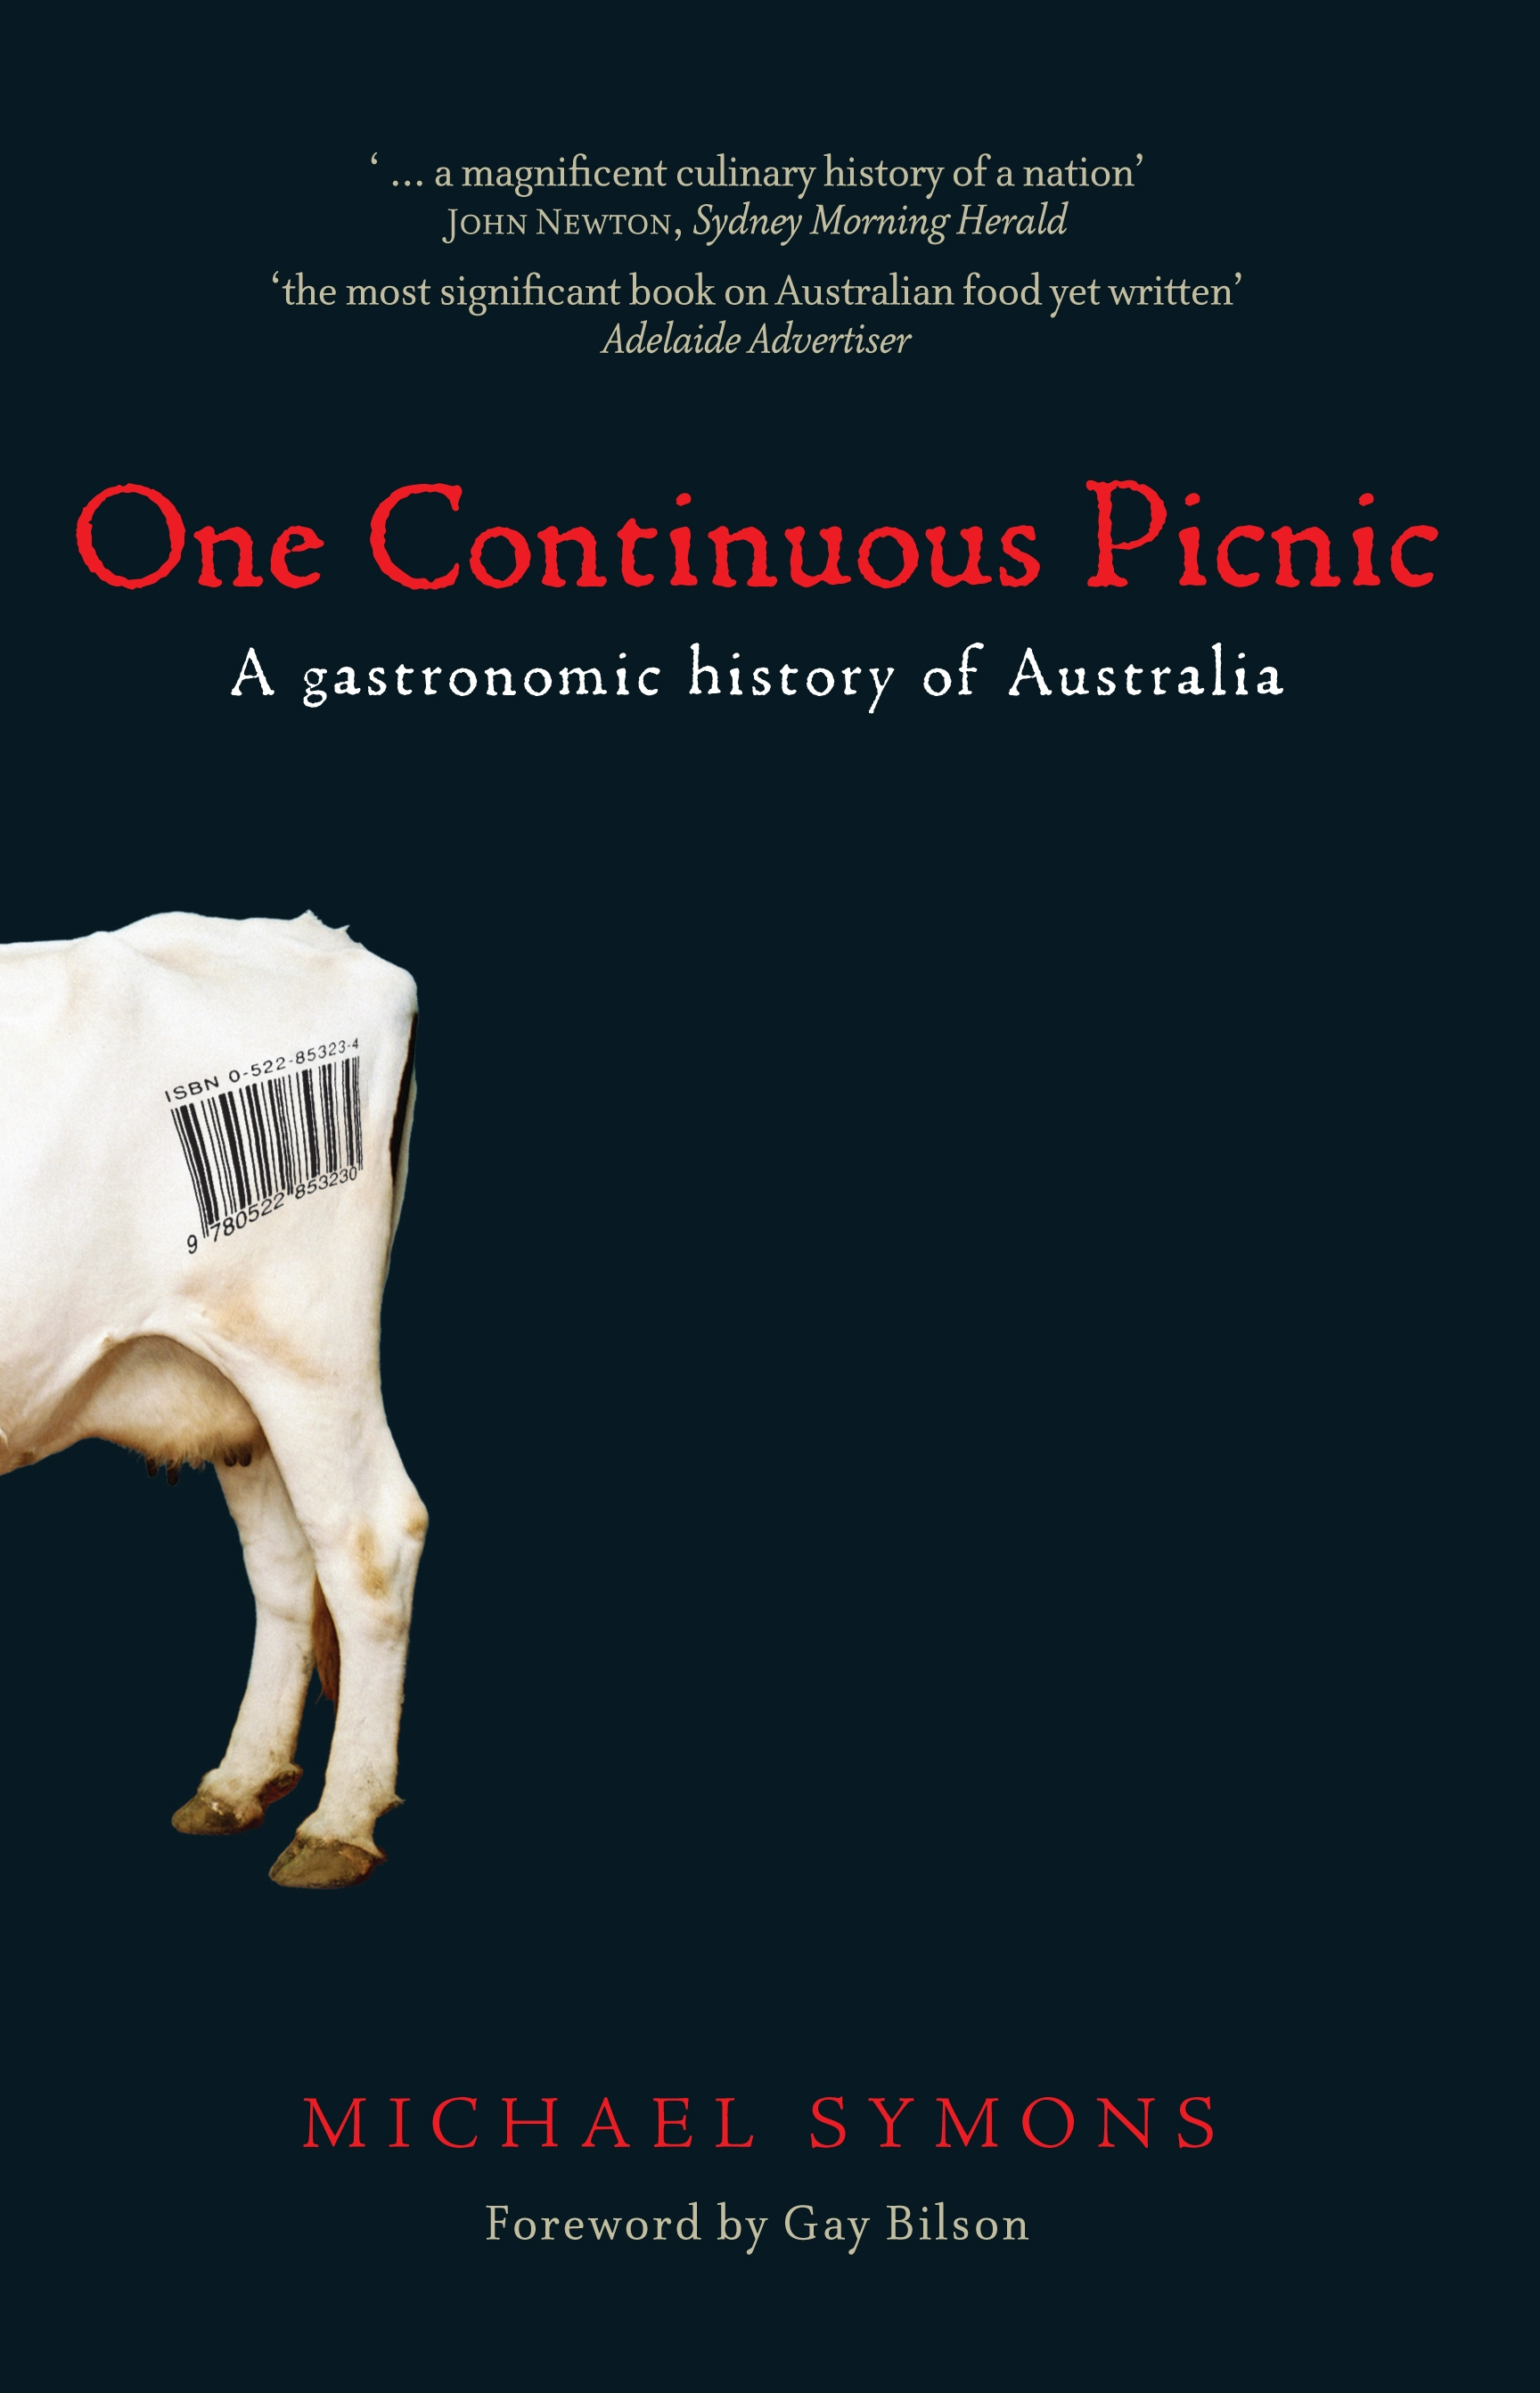 Image result for Michael Symons One Continuous Picnic""